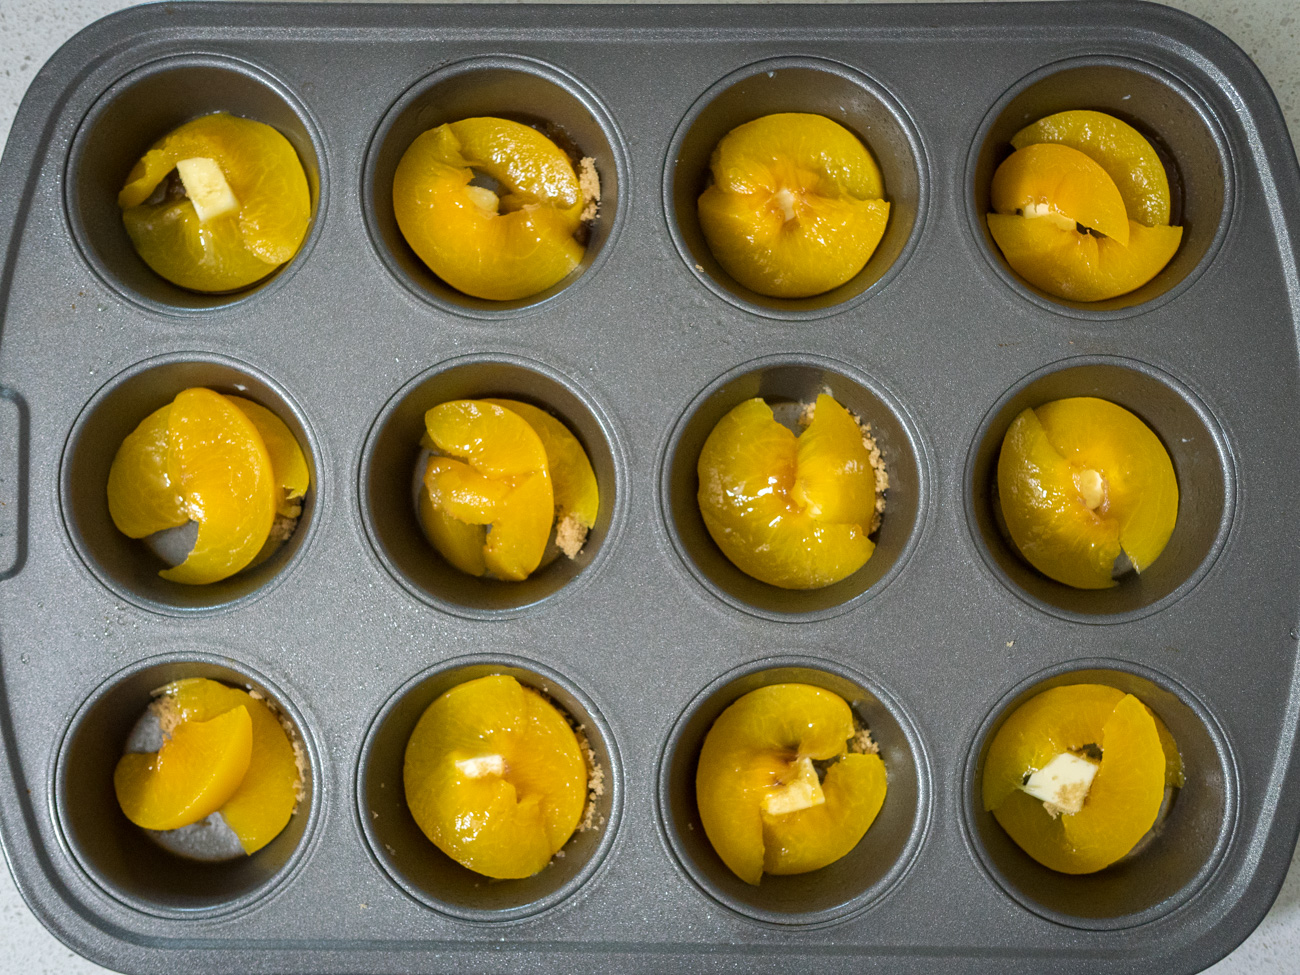 Slice 1-2 peaches into thin slices. Put about 3 slices into the bottom of each muffin cup.